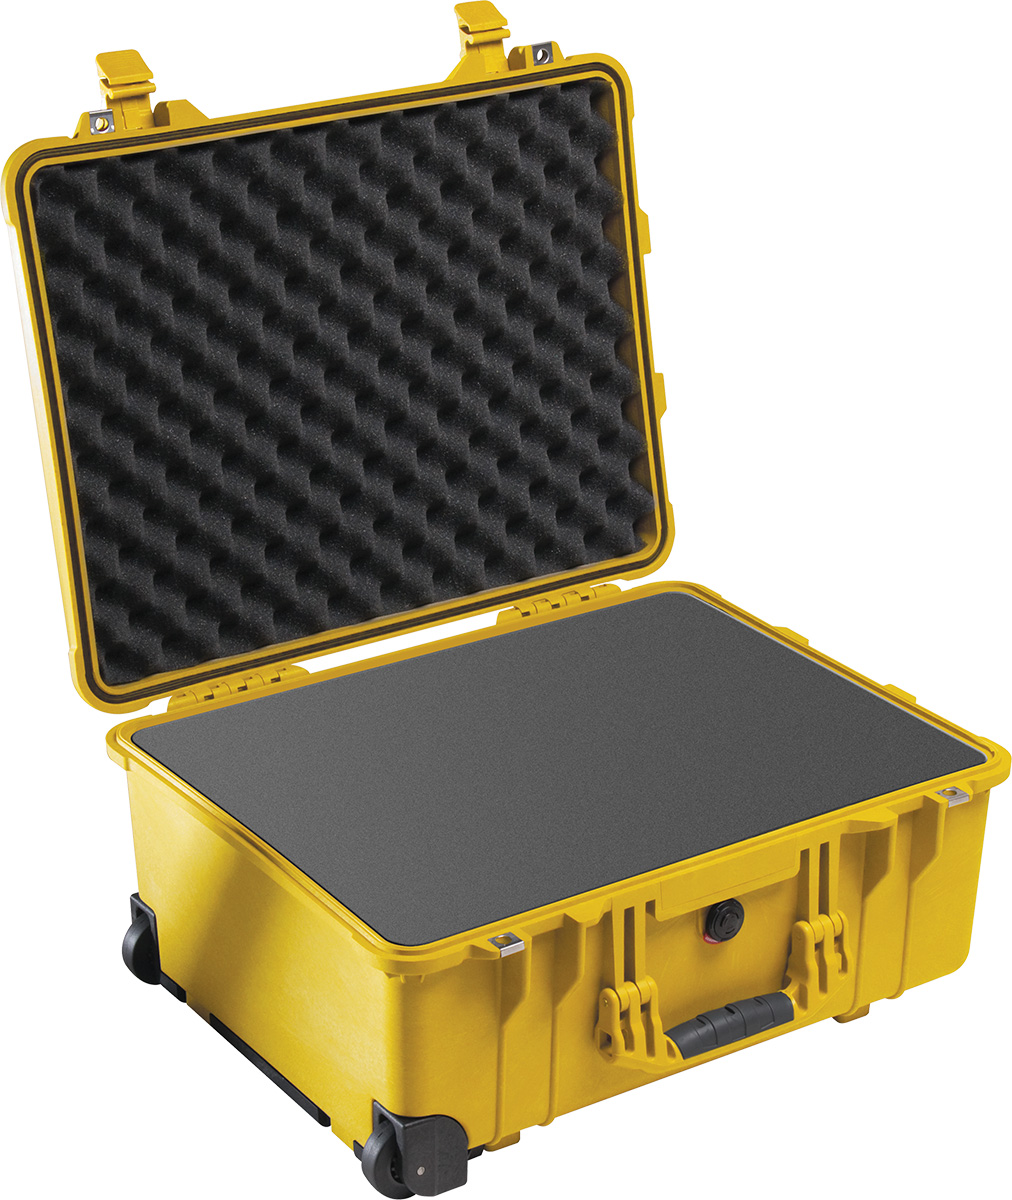 pelican 1560 yellow watertight foam case